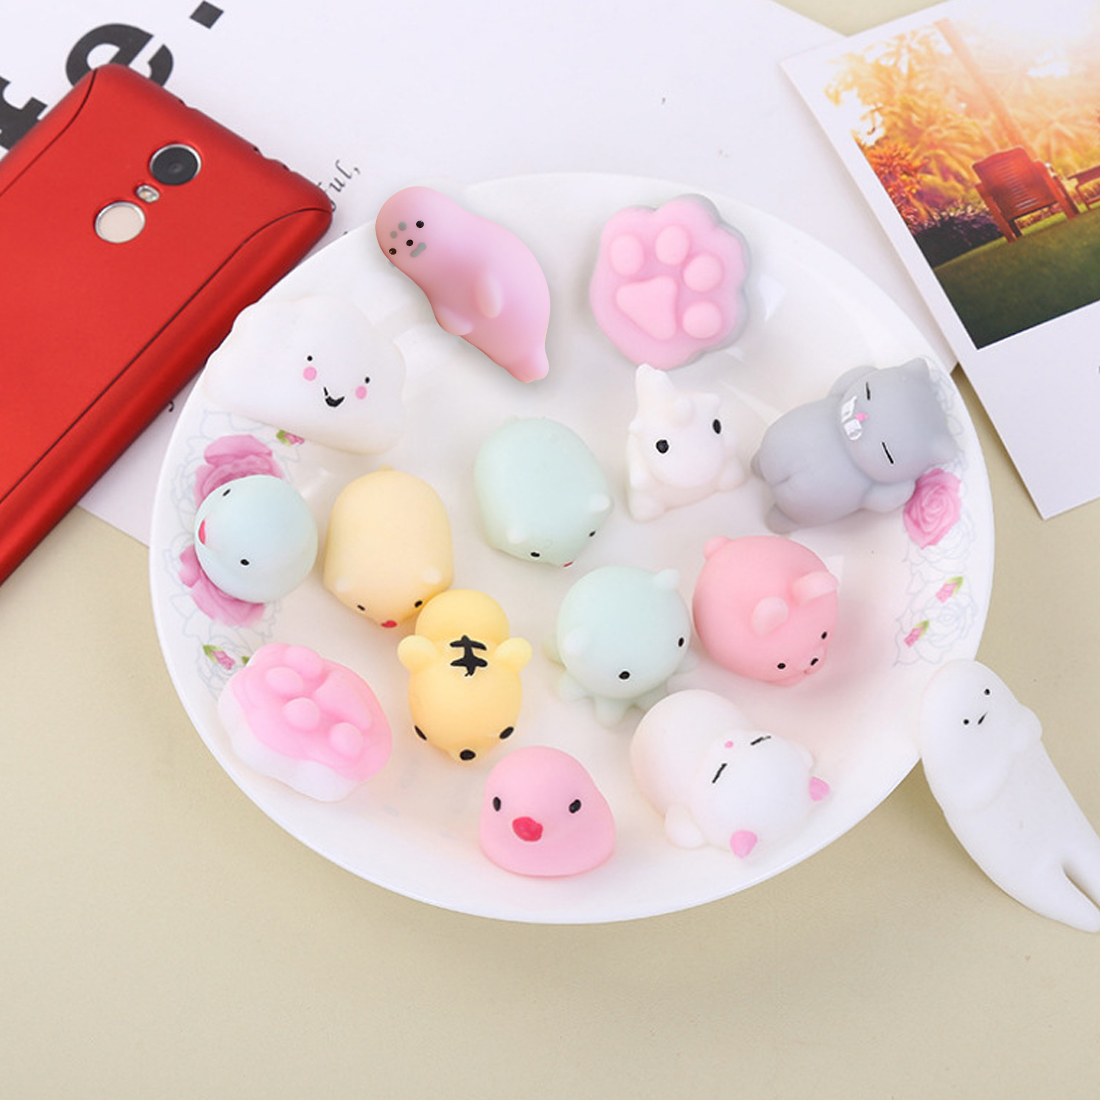 Kind-Hearted New Cute Small Pendant Bread Cake Kids Toy Mobile Phone Strapes Kawaii Mini Seal Soft Press Squishy Slow Rising Squeeze Stretchy Cellphones & Telecommunications Mobile Phone Accessories